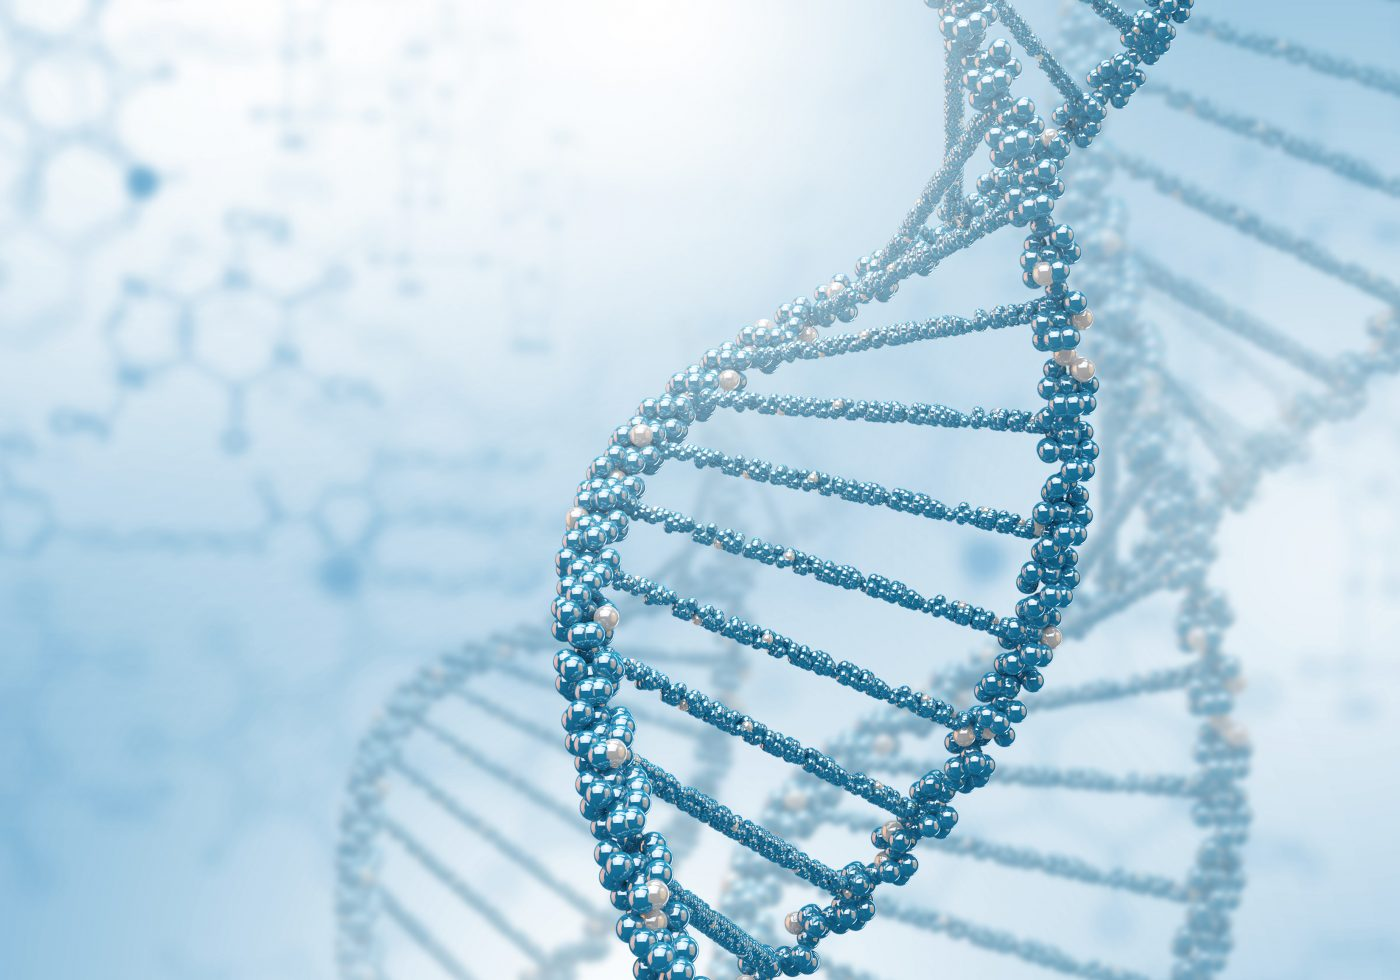 Specific Gene, PLK1, Promotes the Spread of Prostate Cancer, Study Finds